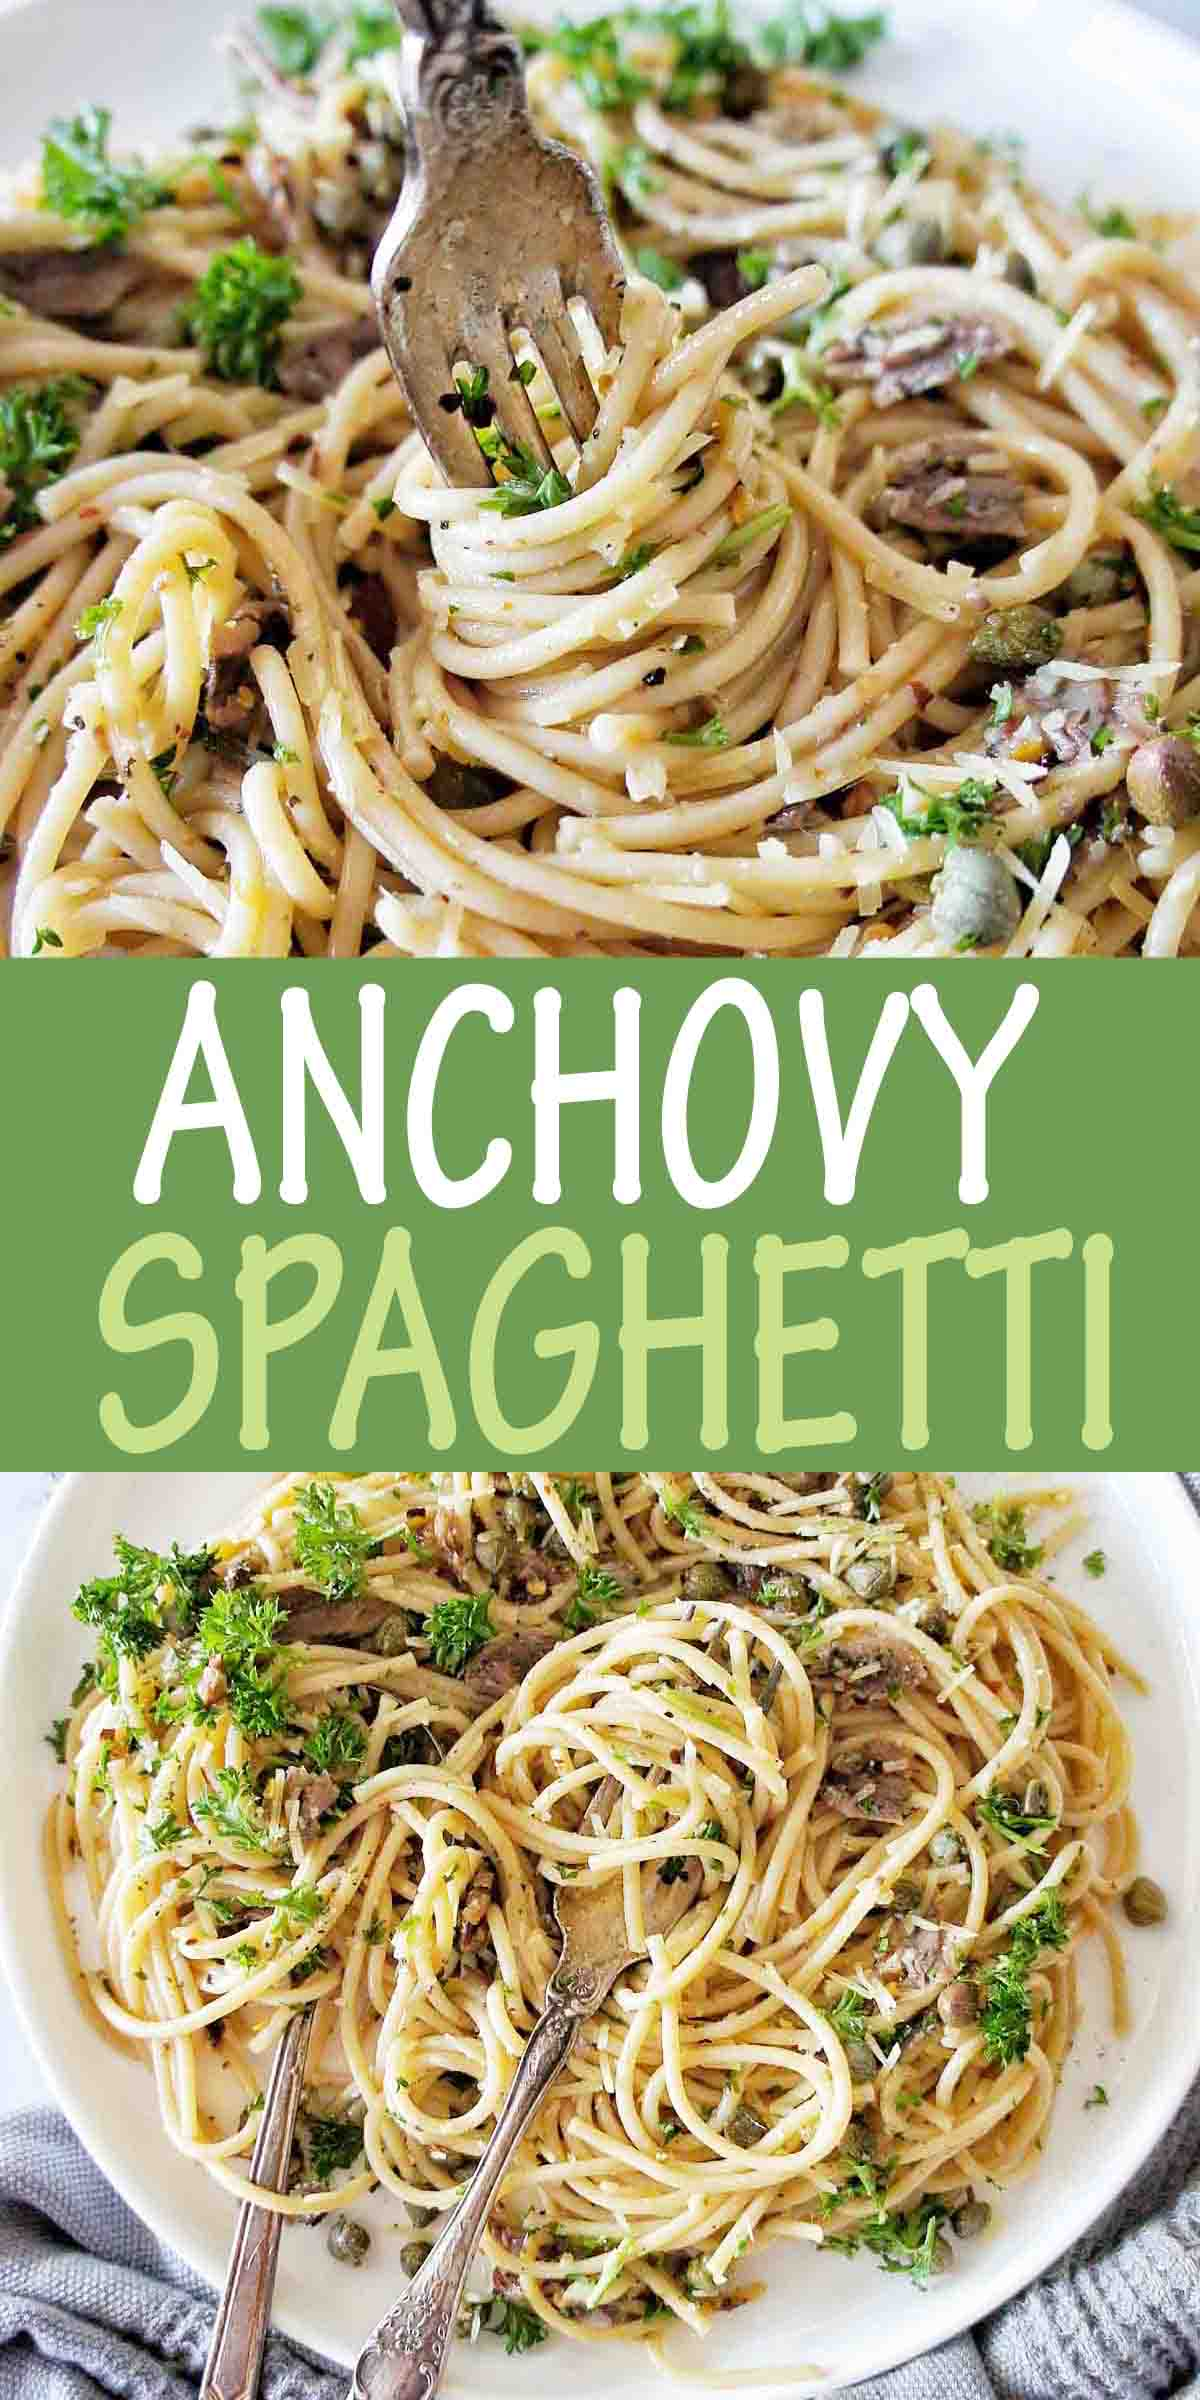 Anchovy Spaghetti with text over lay